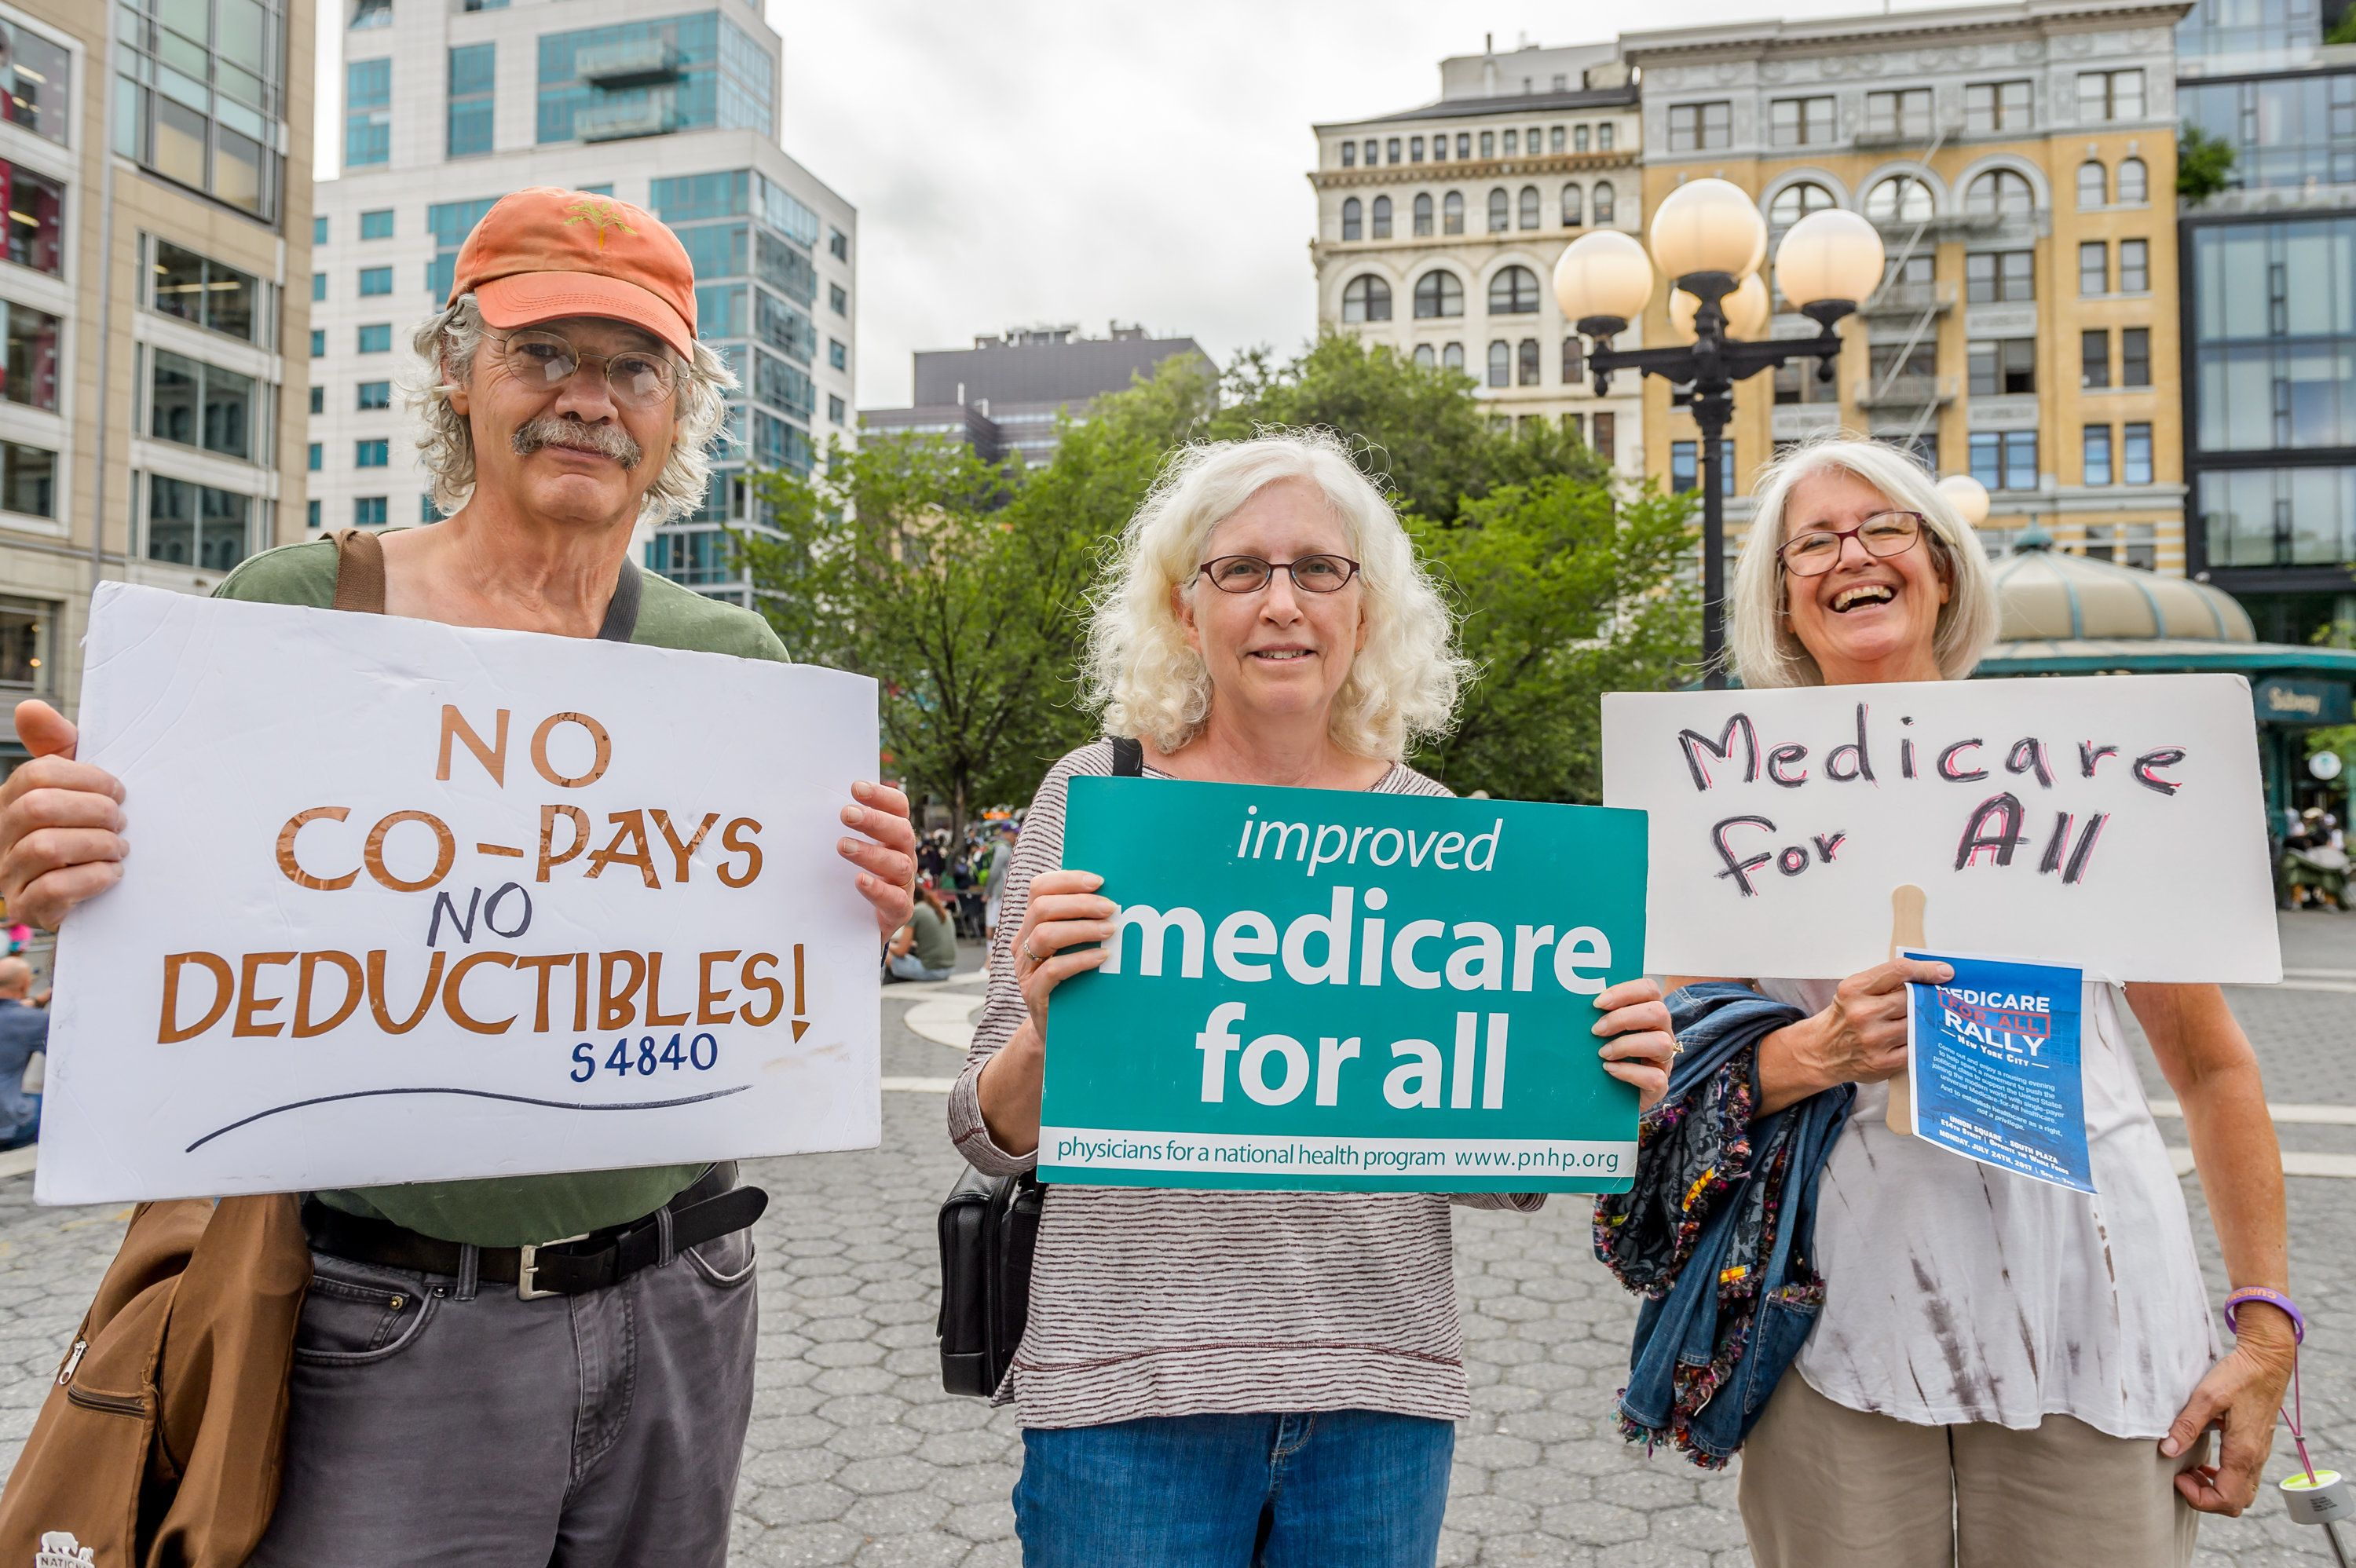 UNION SQUARE, NEW YORK, UNITED STATES - 2017/07/24: Hundreds of New Yorkers joined a grassroots alliance of health care advocates in a rally on the steps of Union Square to demand a universal, single payer, improved and expanded Medicare healthcare system and an end to for-profit healthcare. Coordinating rallies have been organized in communities across the country, with the founding rally being held in Washington D.C. (Photo by Erik McGregor/Pacific Press/LightRocket via Getty Images)